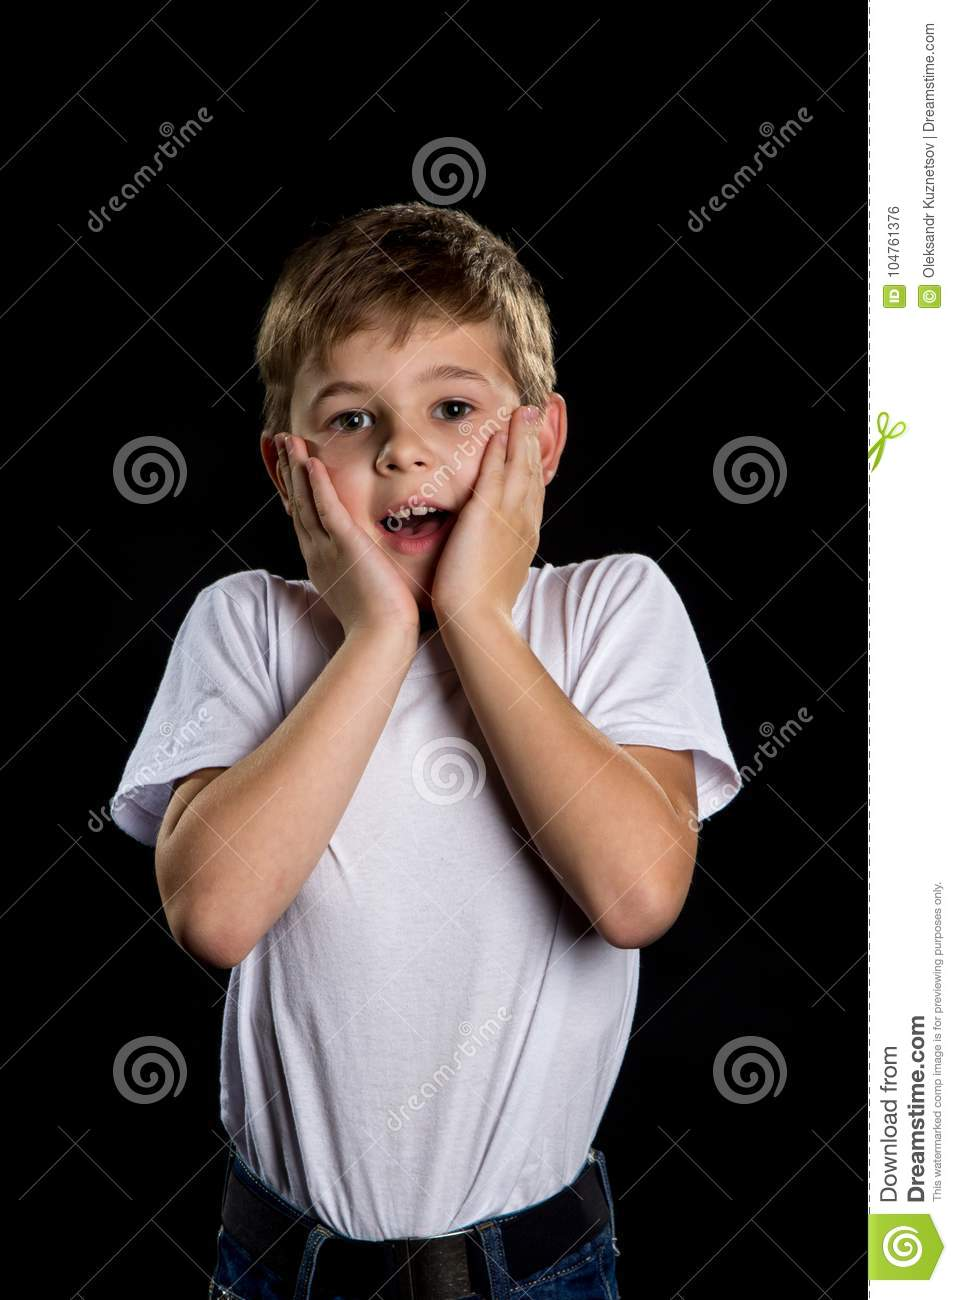 People`s emotions. Surprised boy portrait with palms holding on the cheeks on the black background